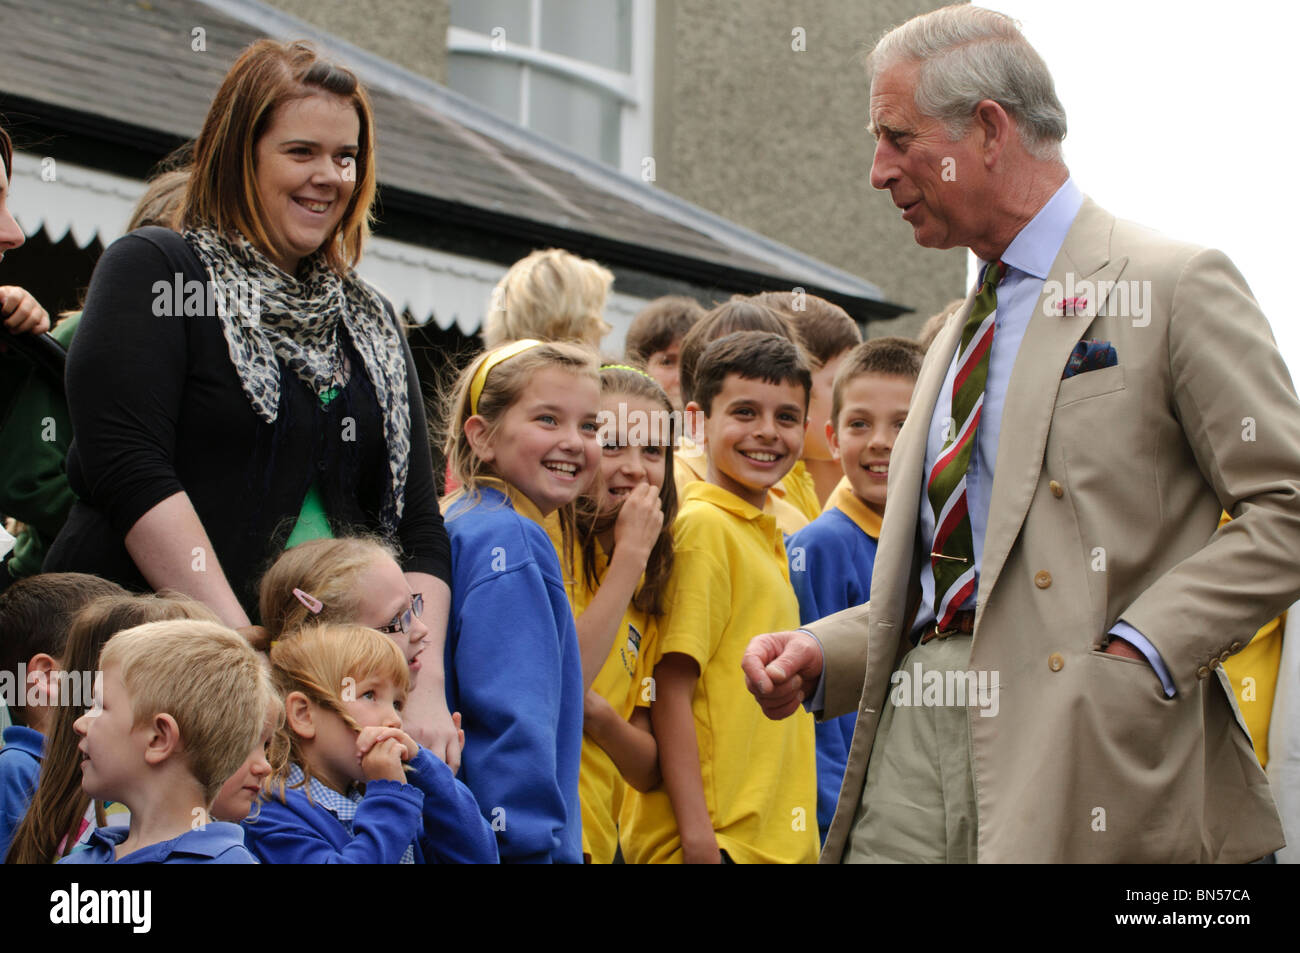 The Prince of Wales visiting the Welsh Woollen Museum, Drefach Felindre, Carmarthenshire, June 28 2010, - Stock Image